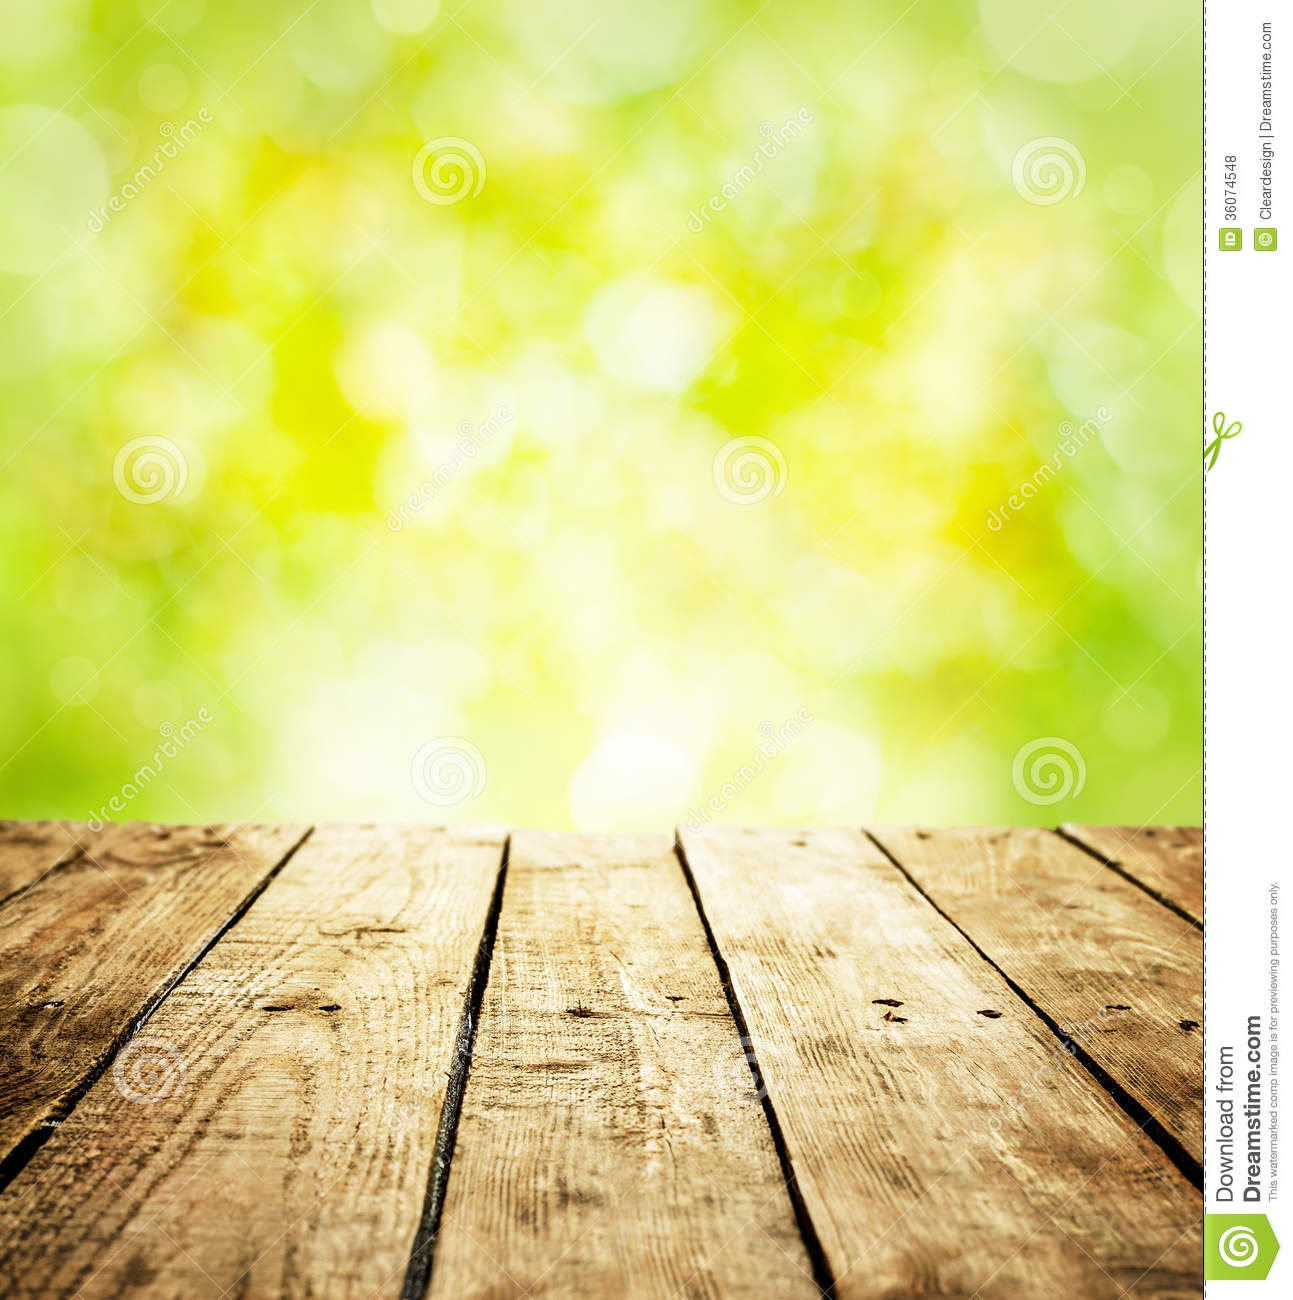 Spring rustic template background with wooden table and text space